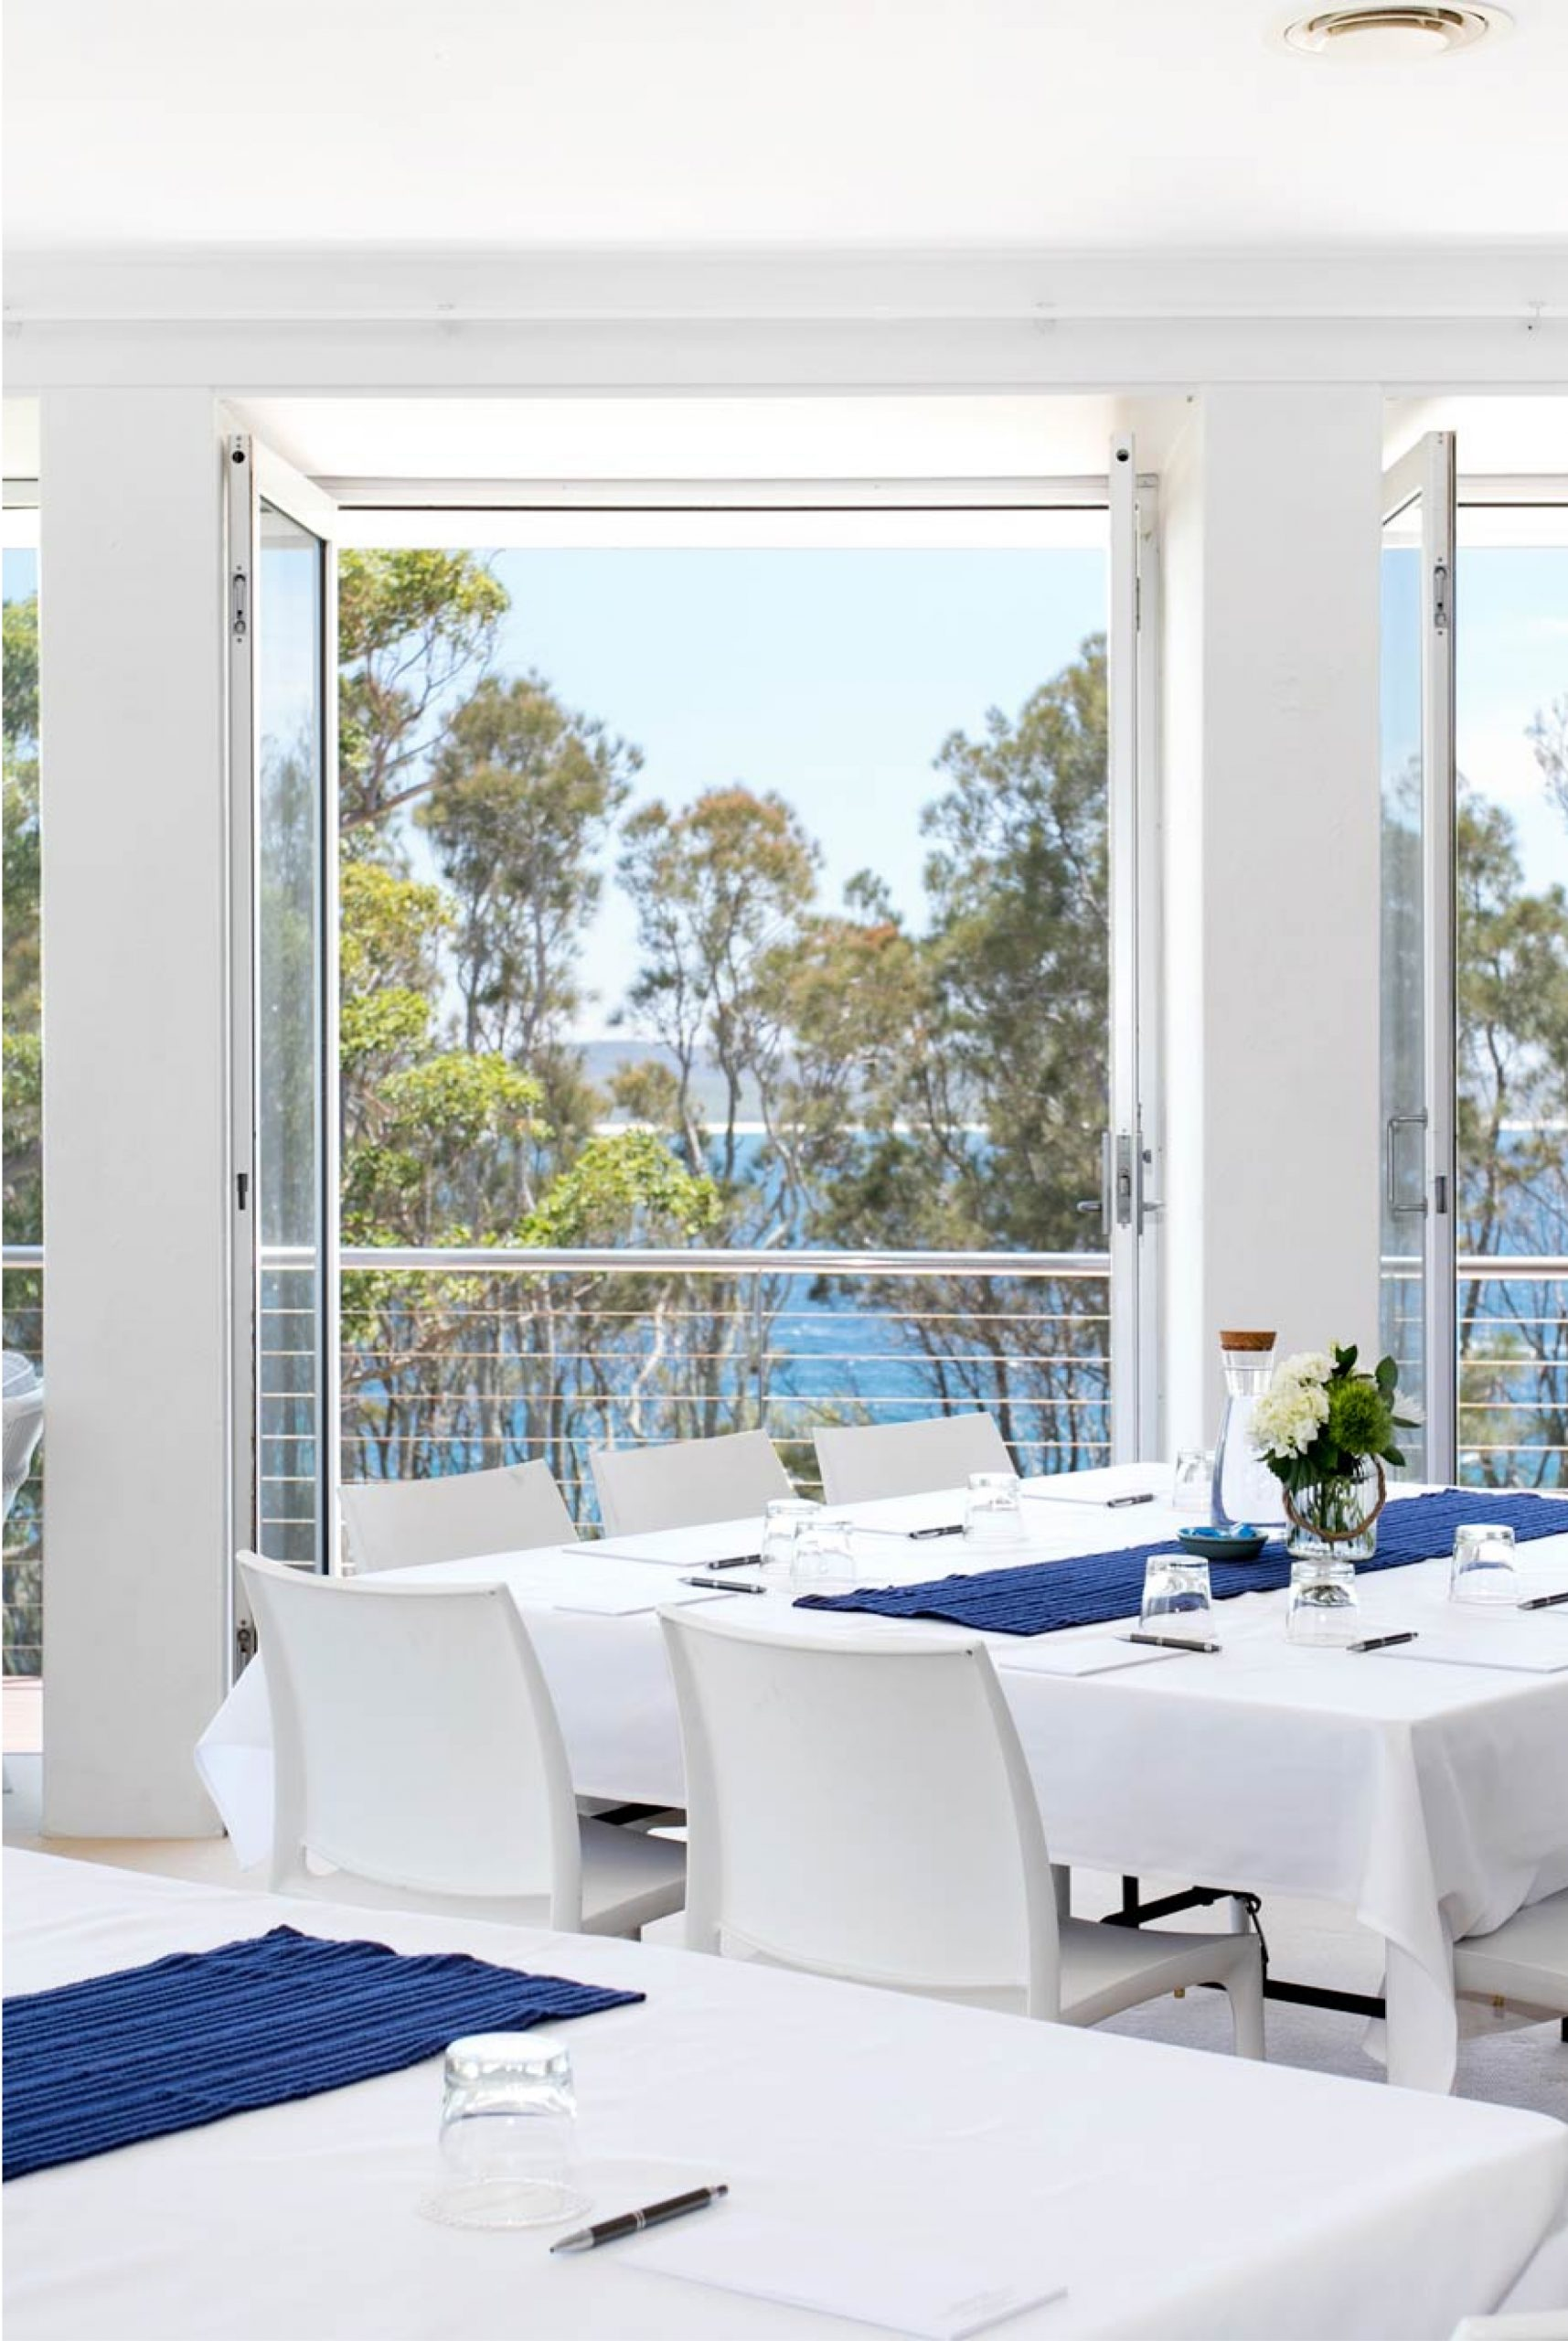 CONFERENCES AT MOLLYMOOK